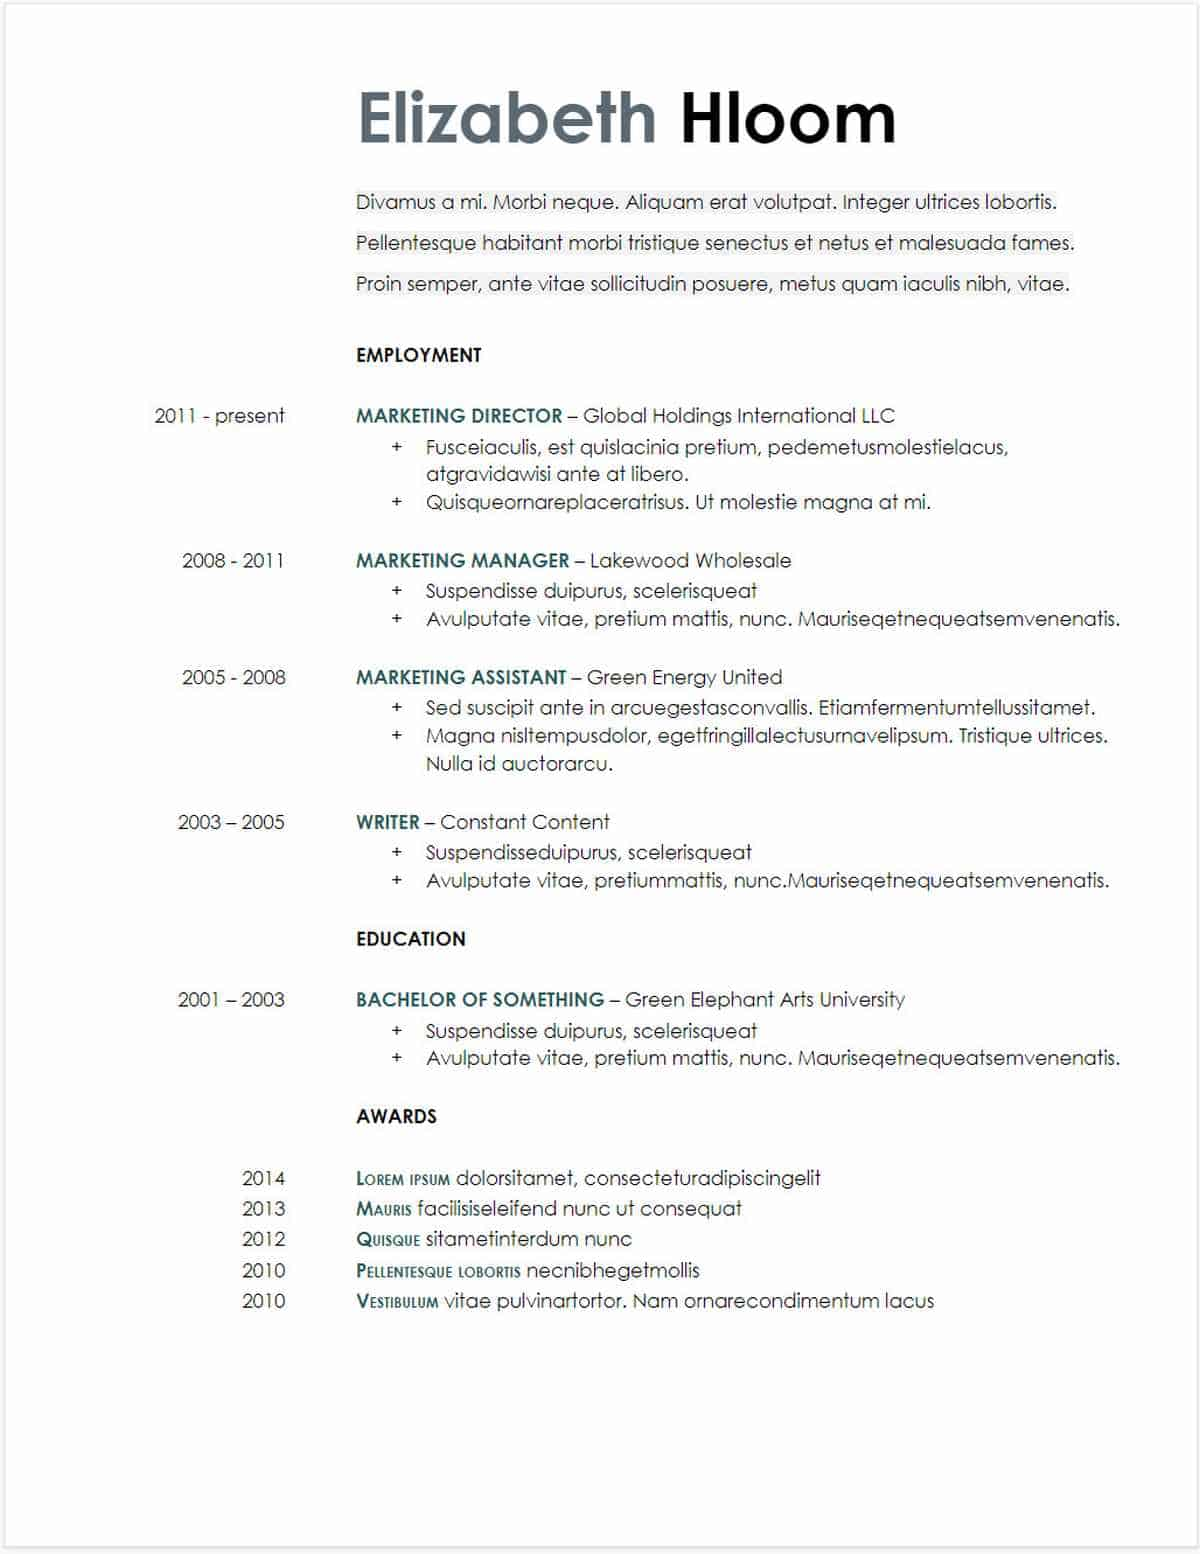 google docs resume templates downloadable pdfs swiss template blue side gdoc free jade Resume Swiss Resume Template Google Docs